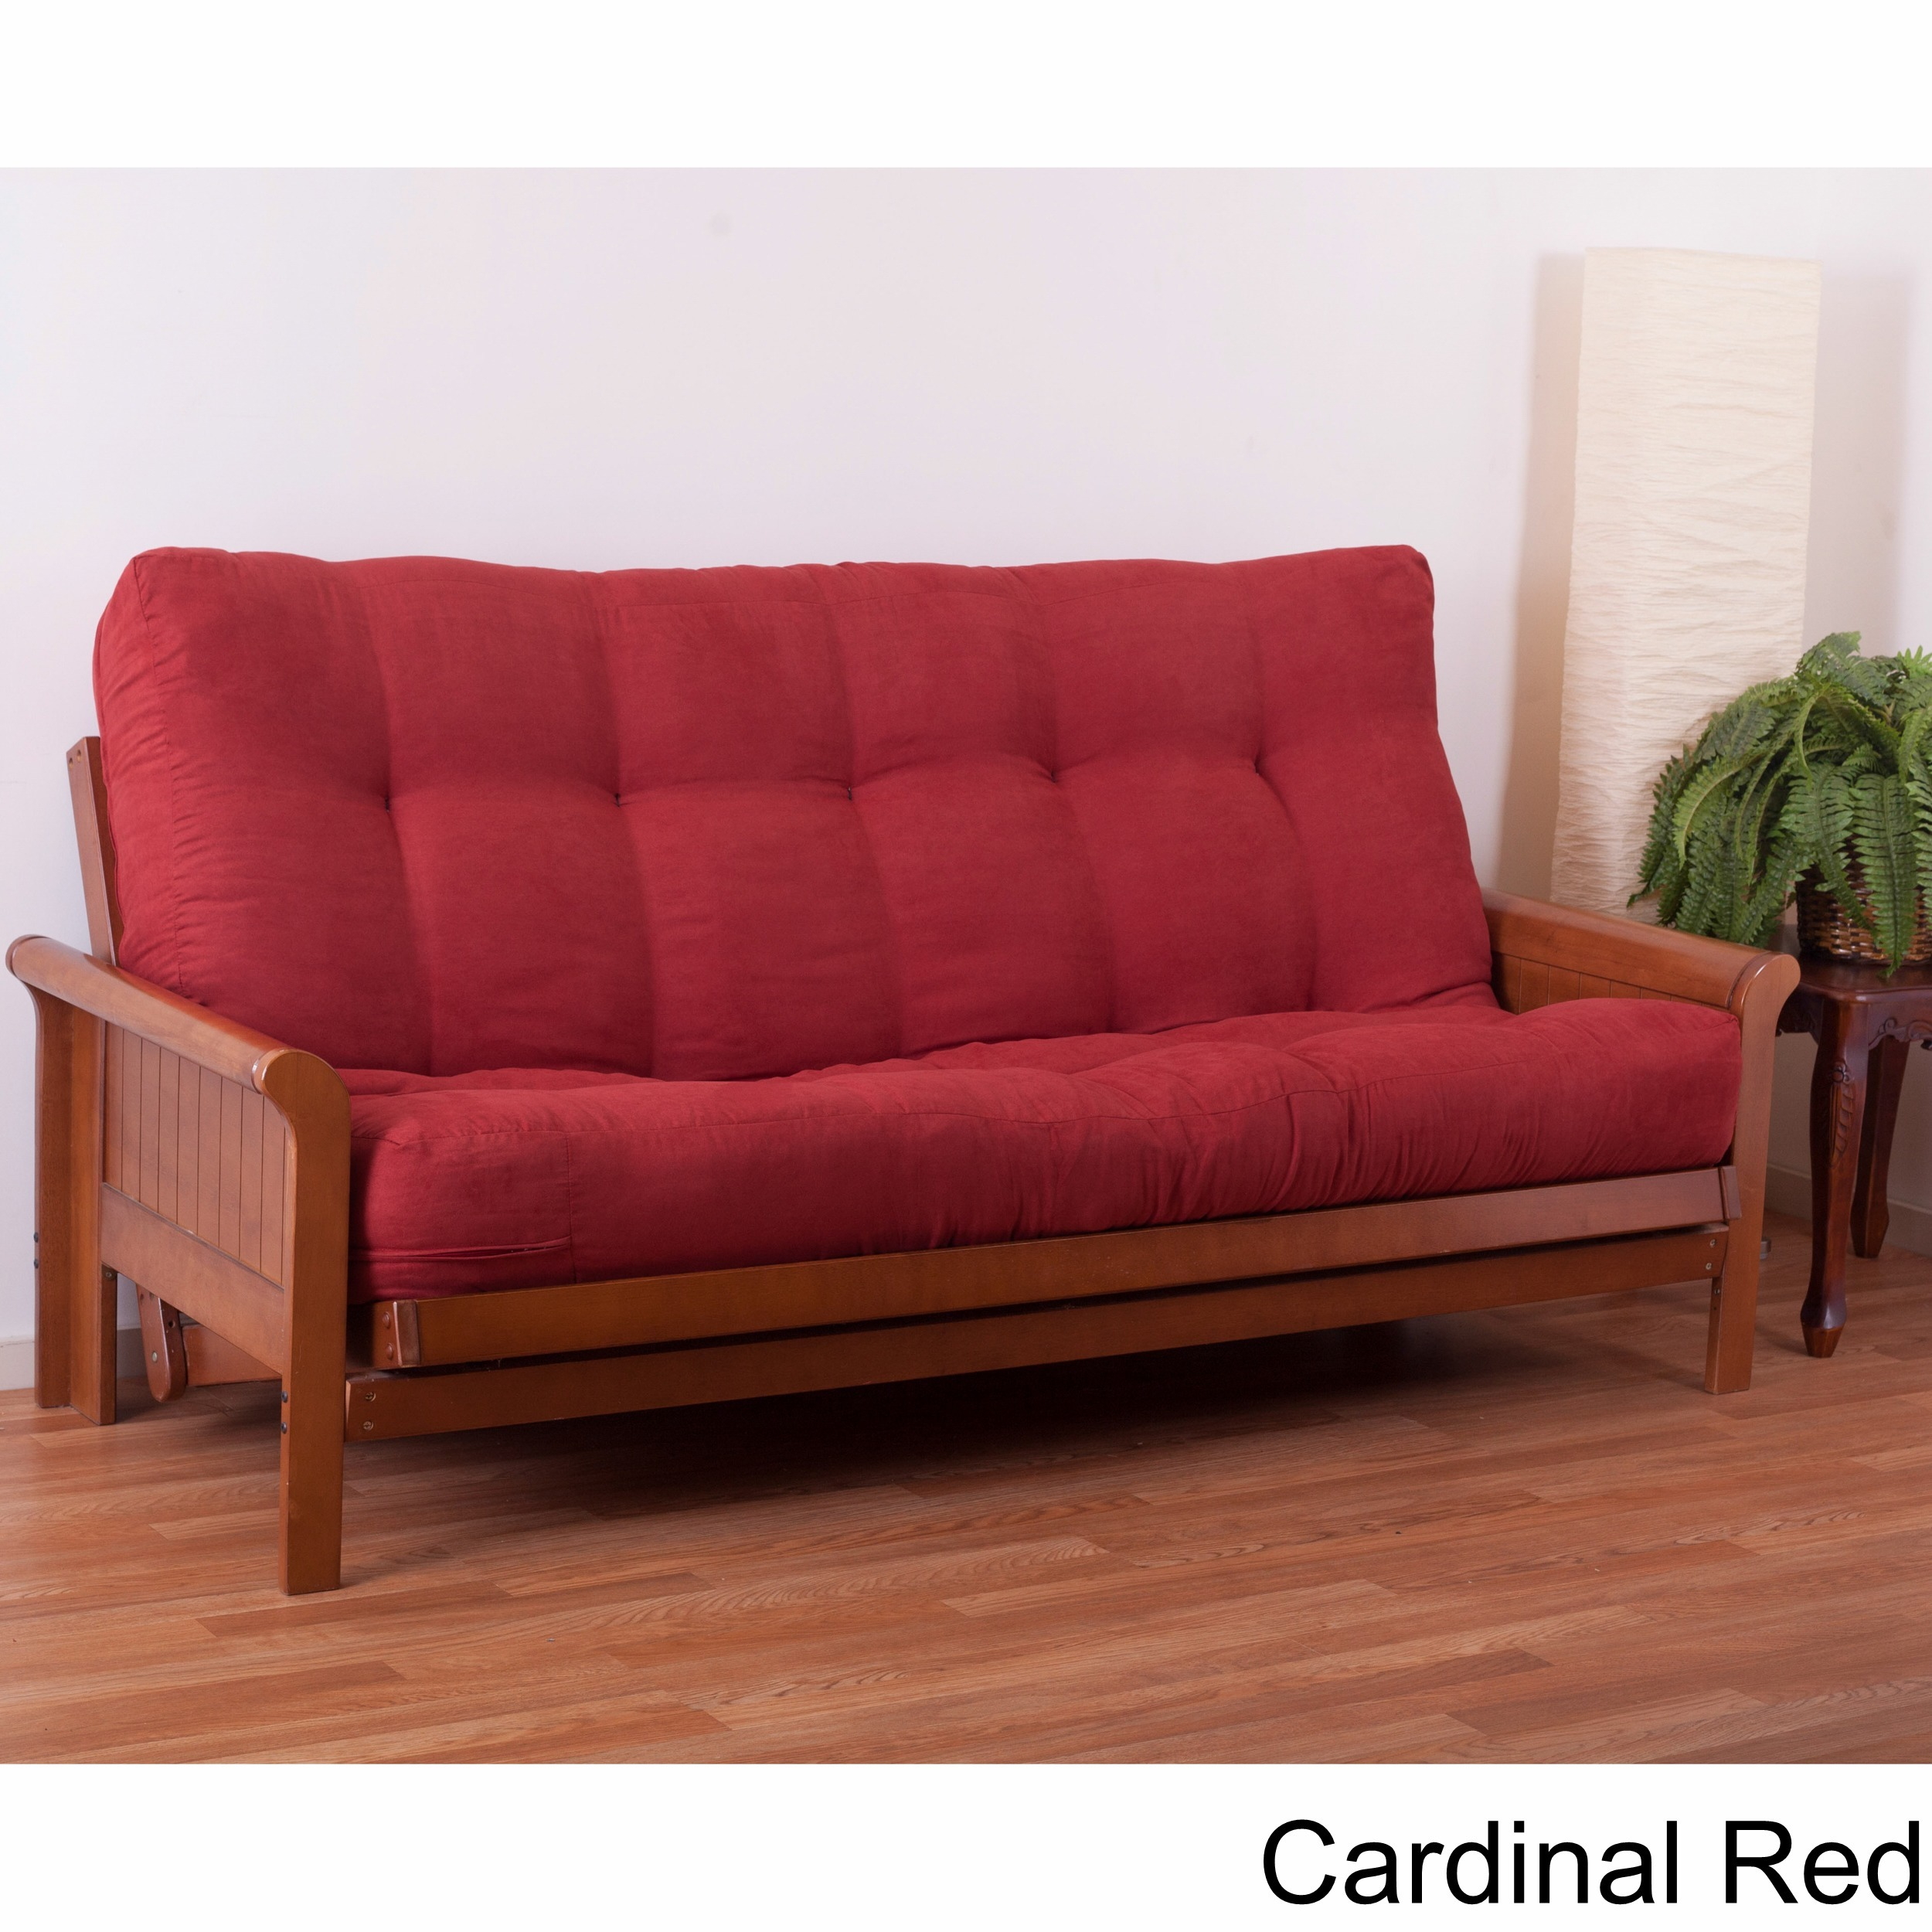 Red Futons Online At Com Our Best Living Room Furniture Deals